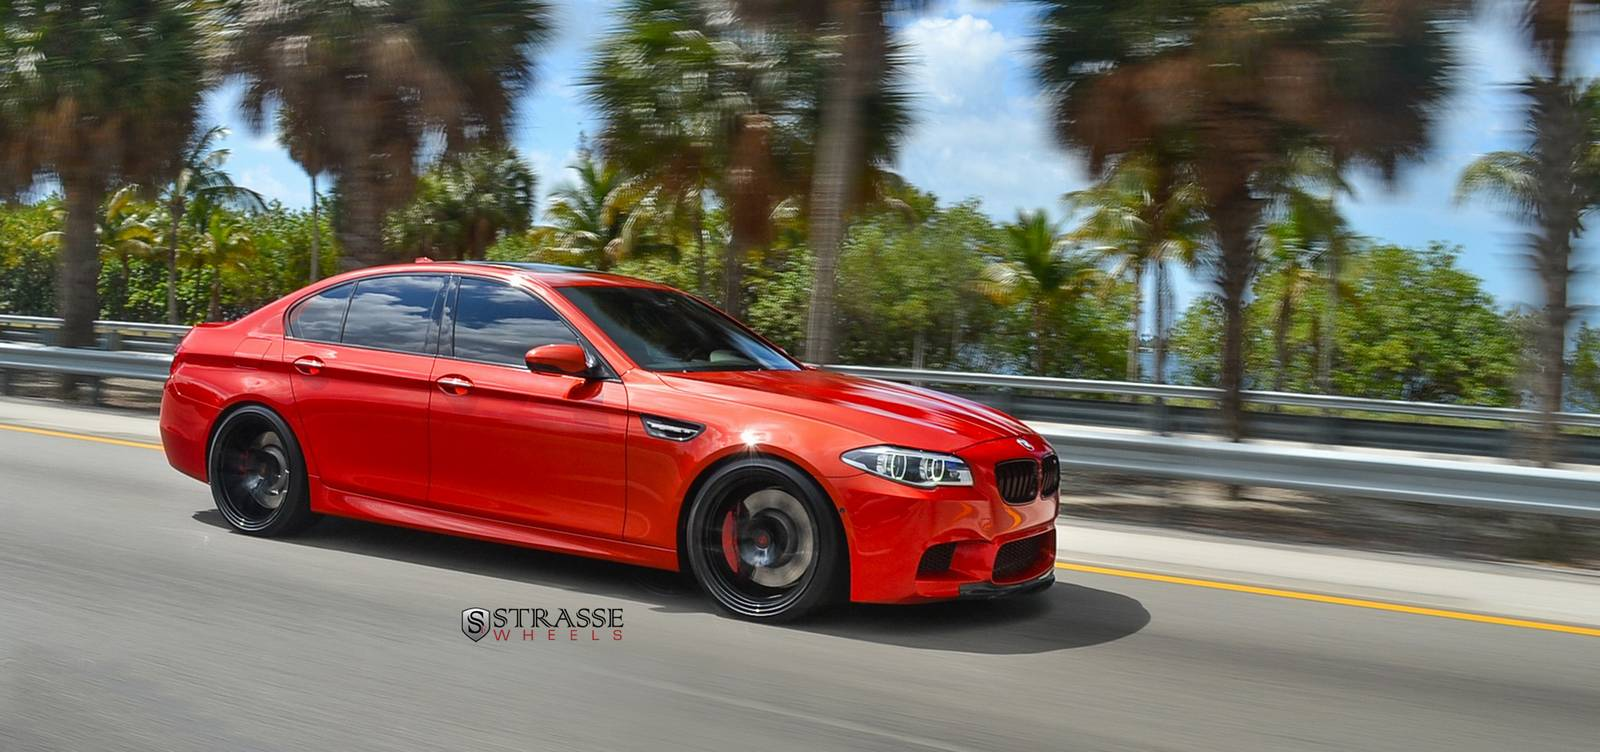 710hp Ind Bmw M5 With Gloss Black Strasse Wheels Gtspirit